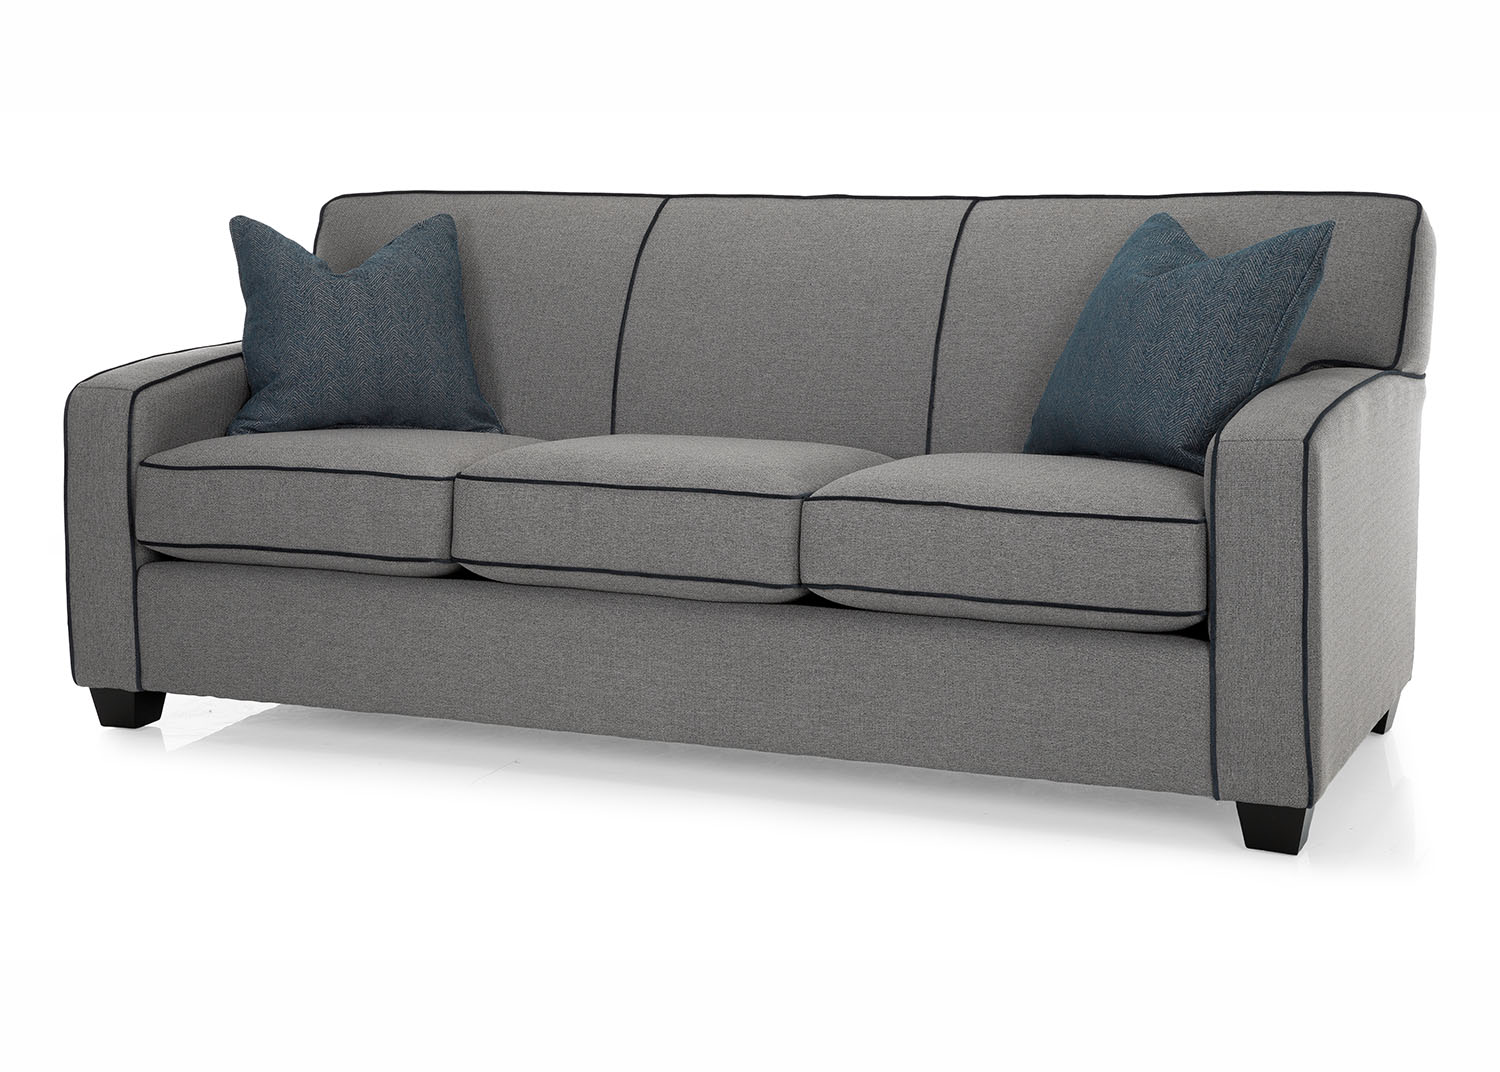 Meubles sofa bed for Meuble rotin montreal